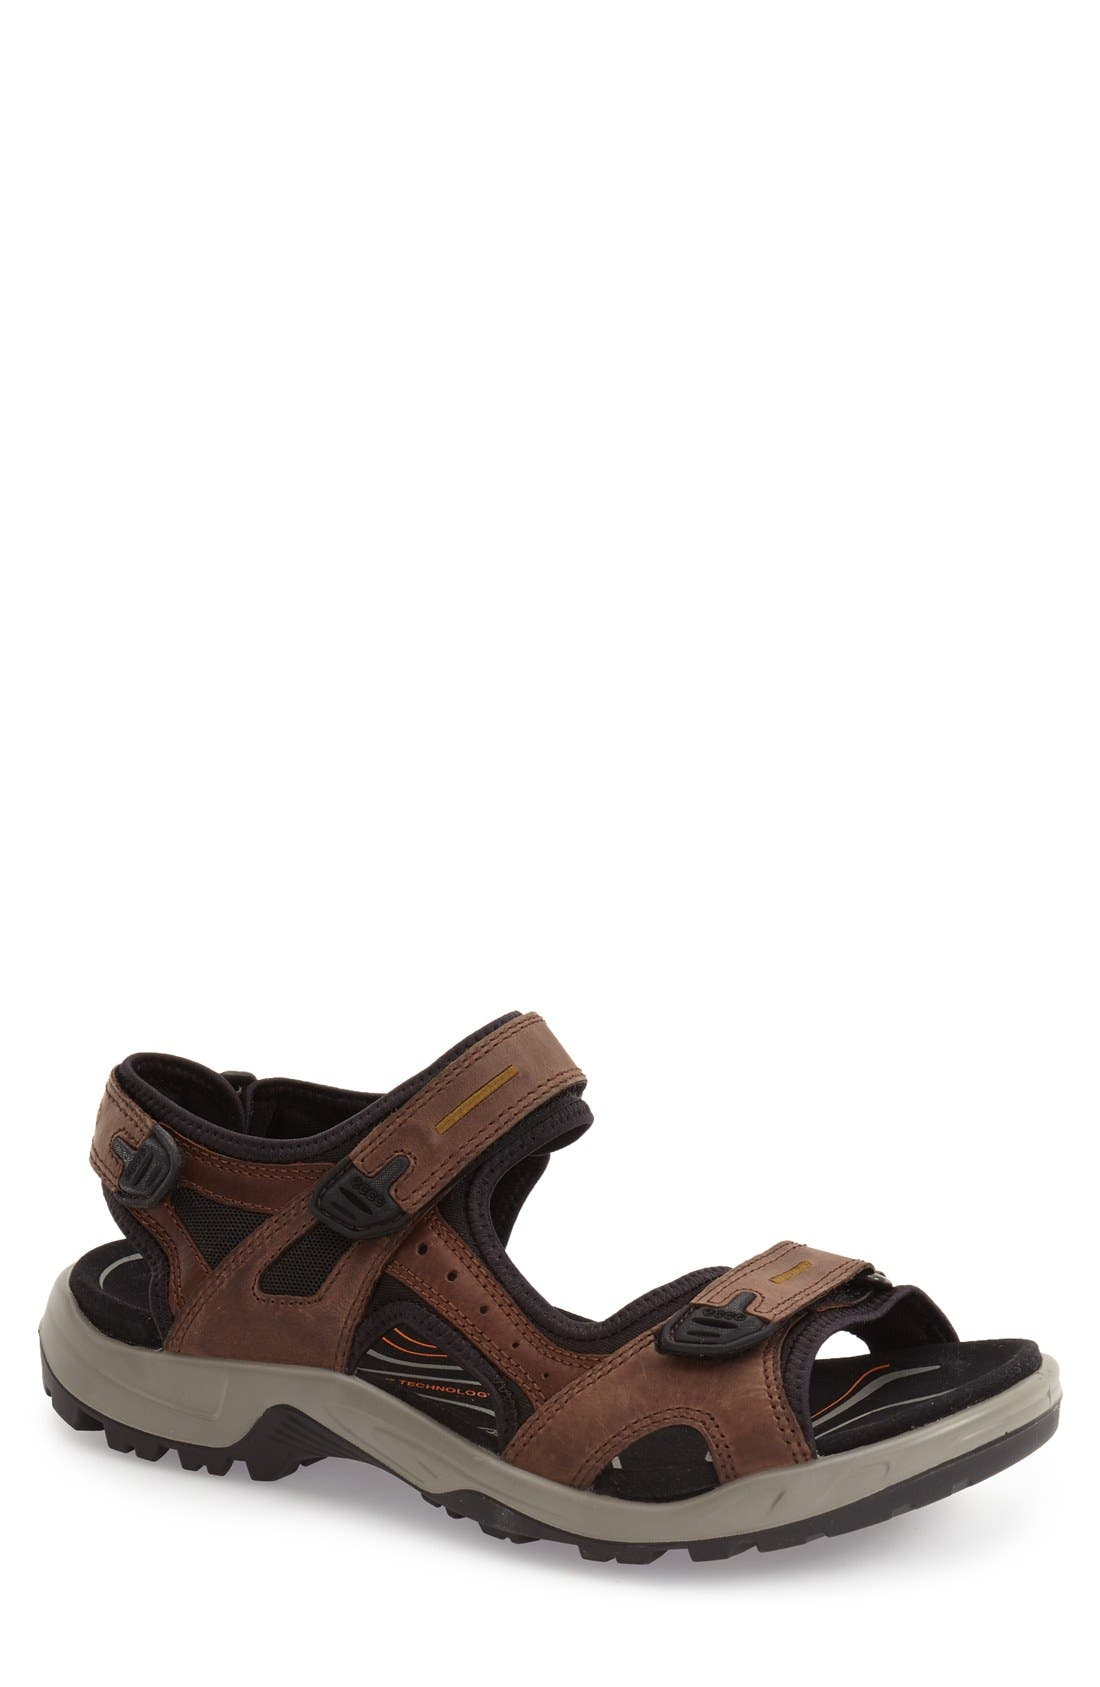 'Yucatan' Sandal,                             Main thumbnail 1, color,                             Espresso Leather